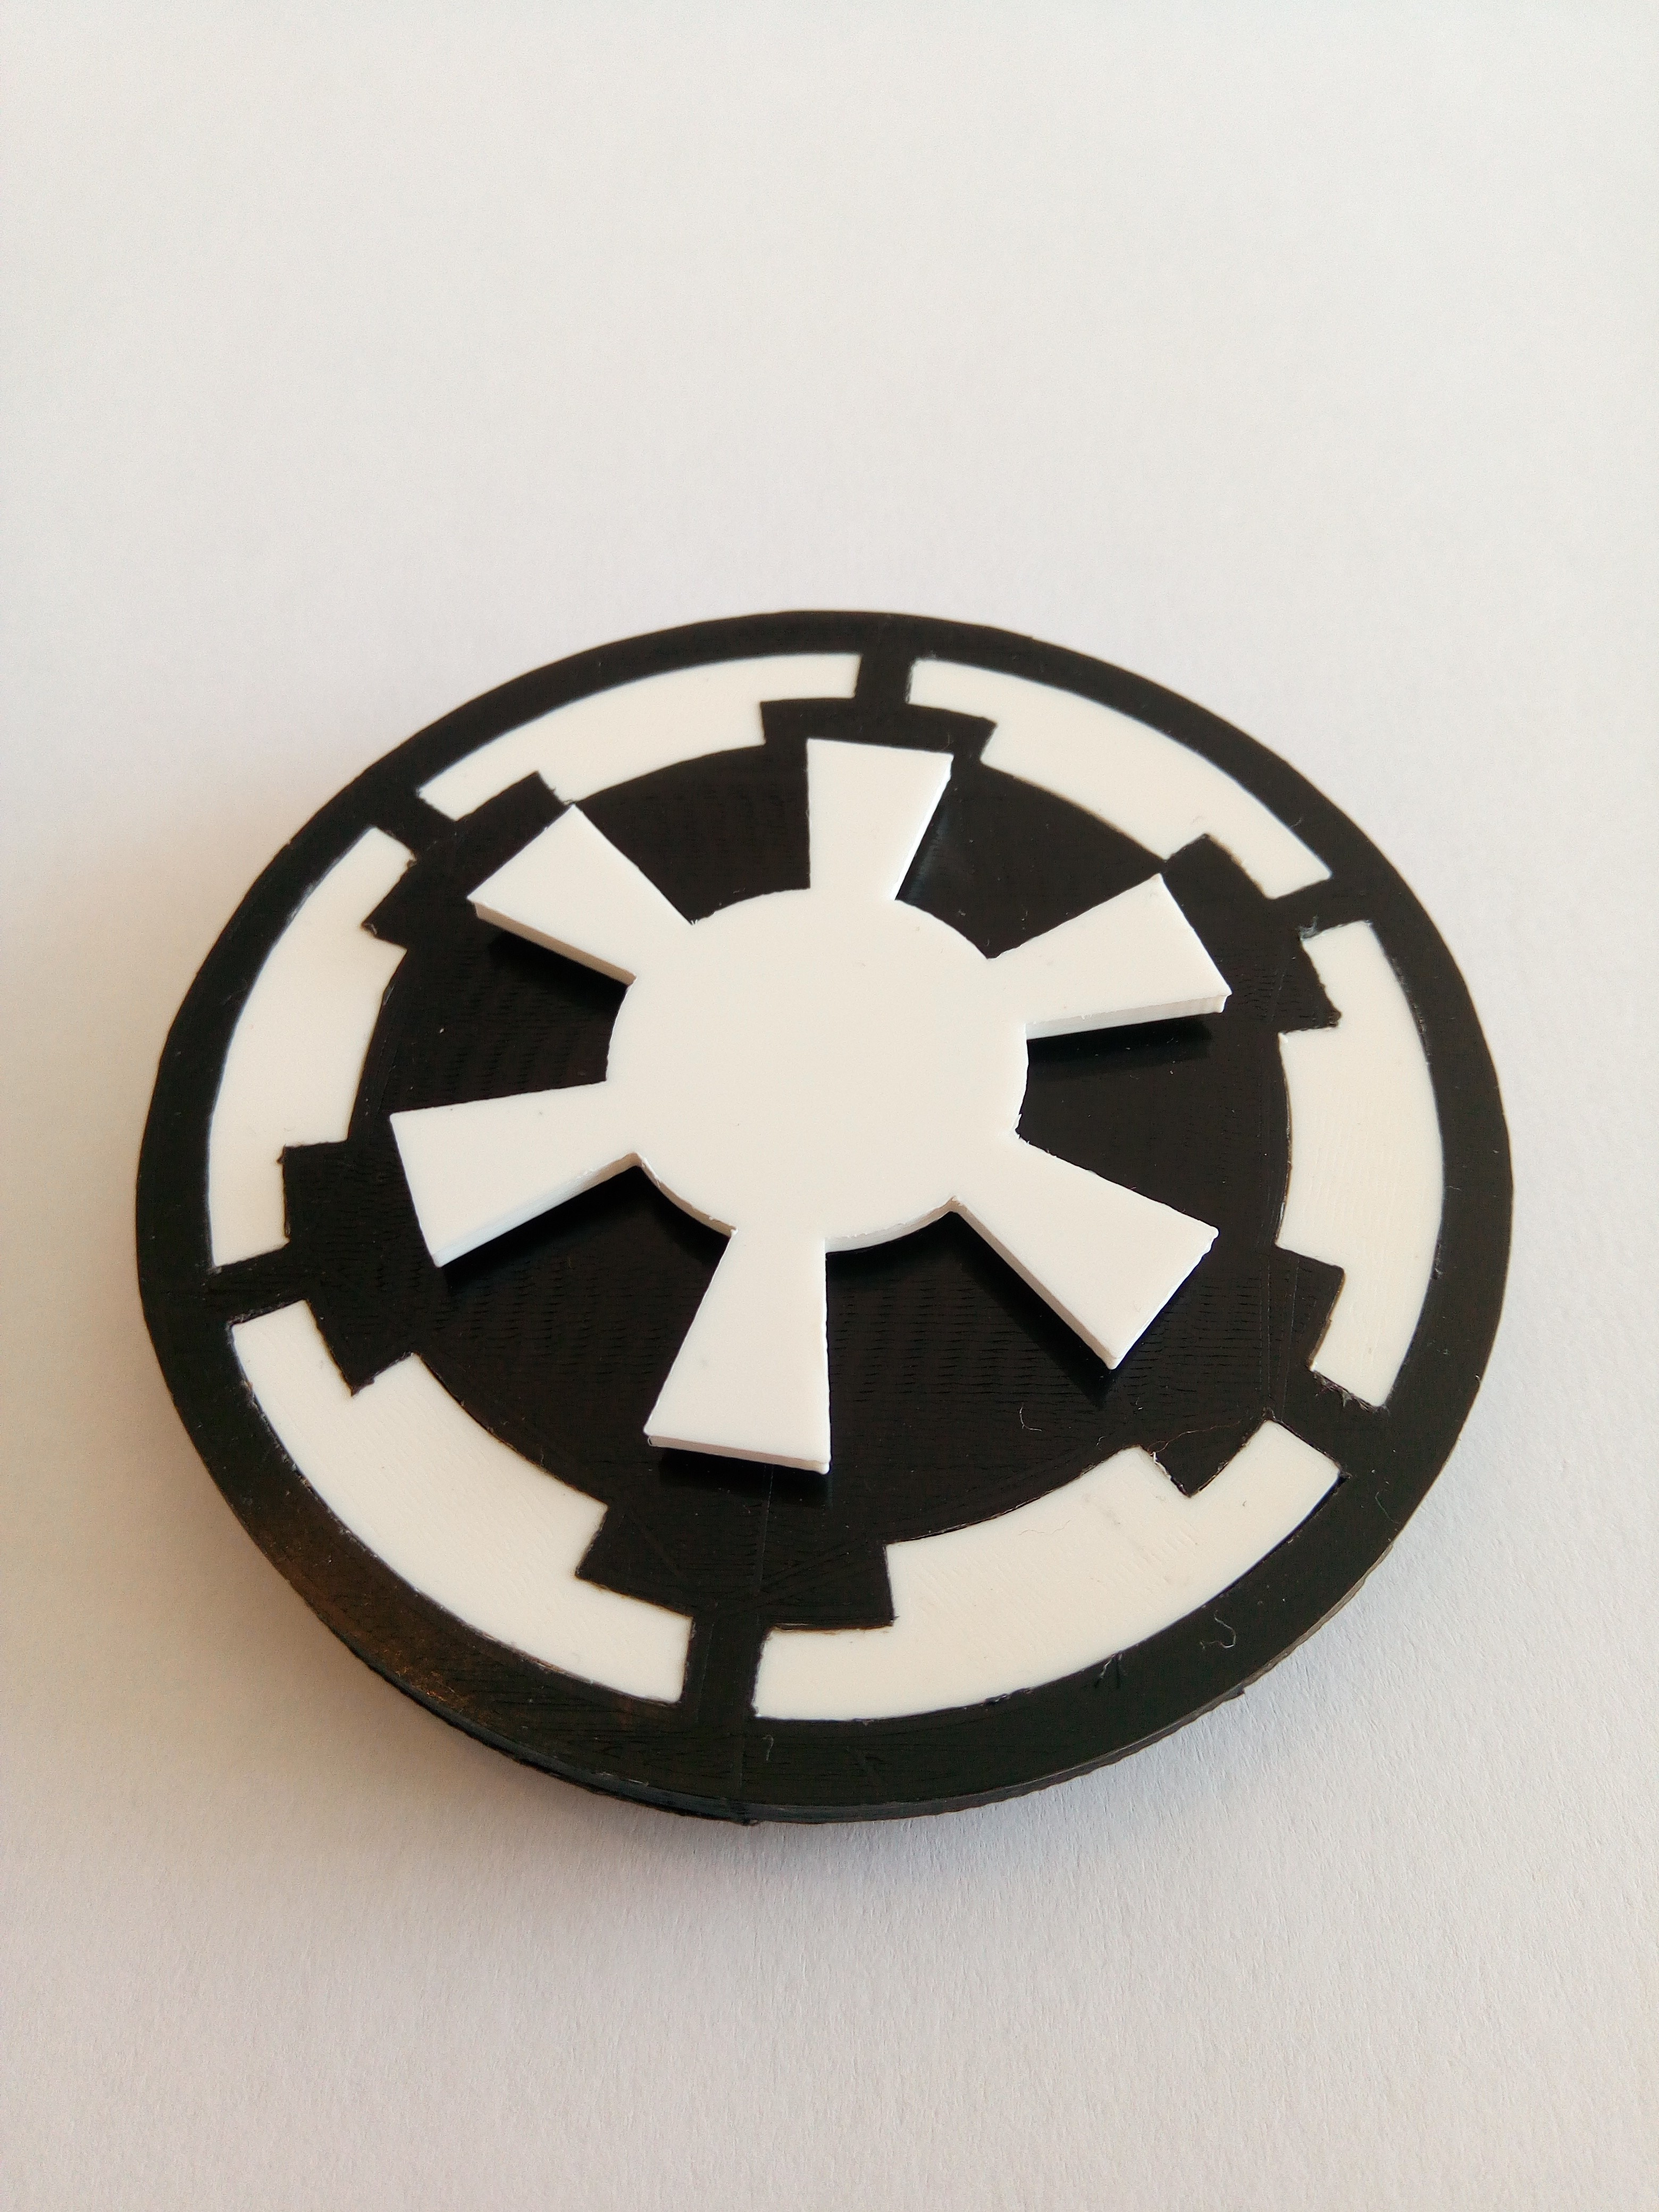 P_20170602_091438.jpg Download STL file Hand Spinner Star Wars • 3D printable template, Guich